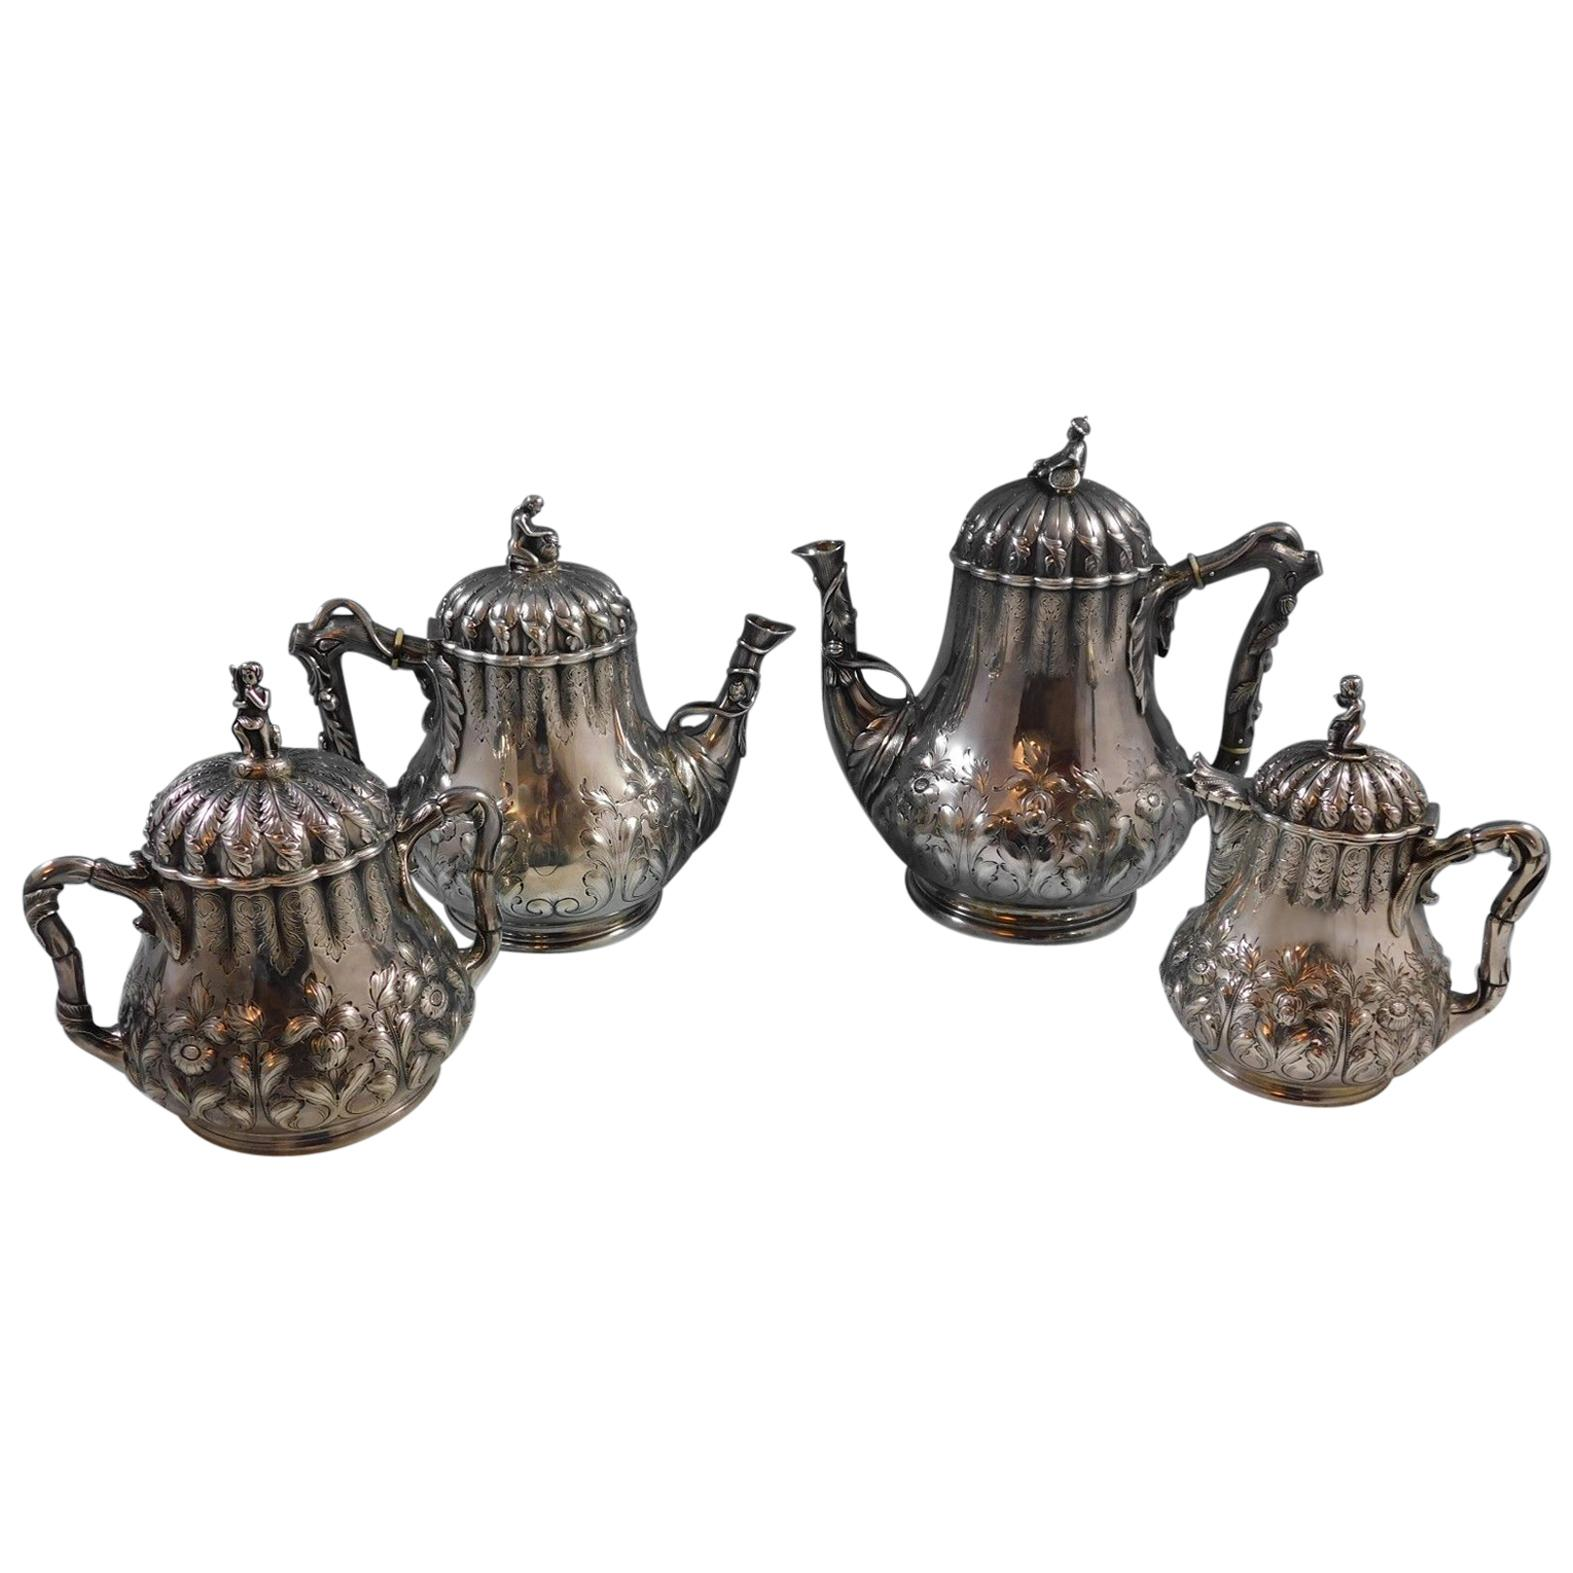 George Sharp Sterling Silver Tea Set 4 Pc with 3-D Cast Japanese Finials  #2264